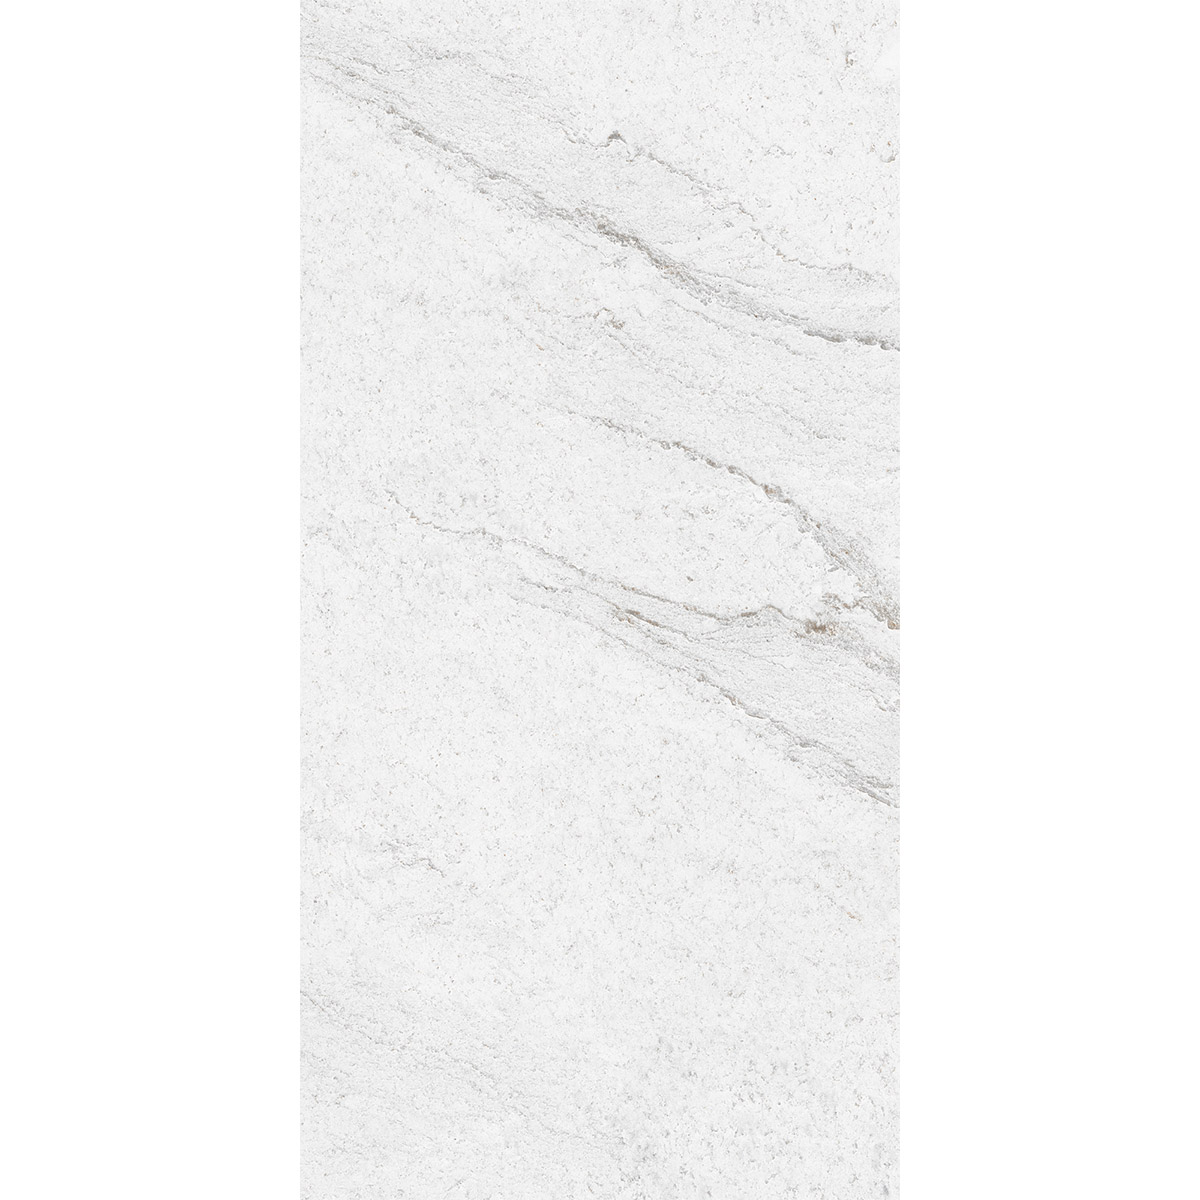 T11061 INNER CLIFF 24X48 LAPPATO